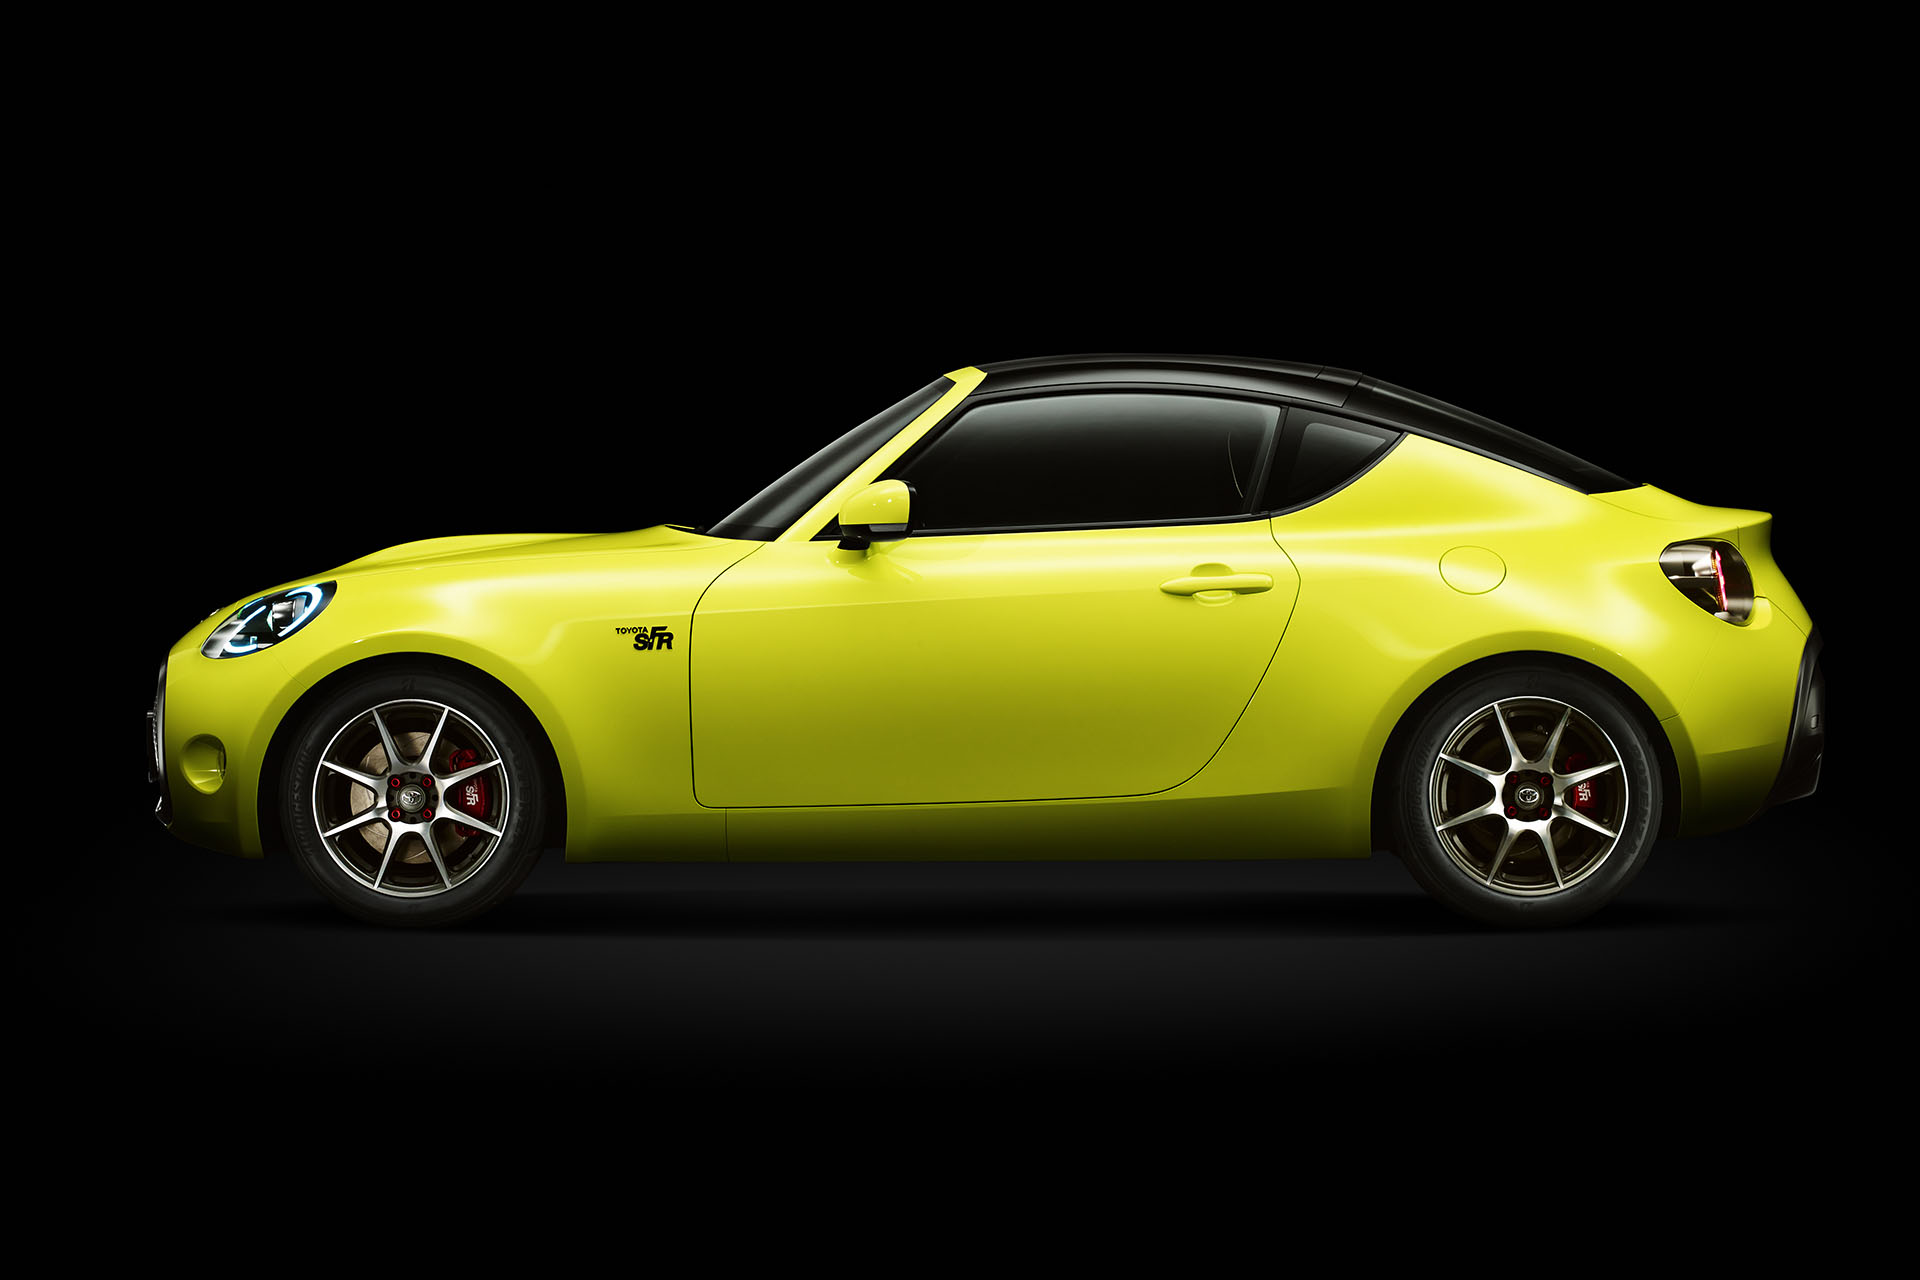 toyota previews new entry level sports car with s fr concept news